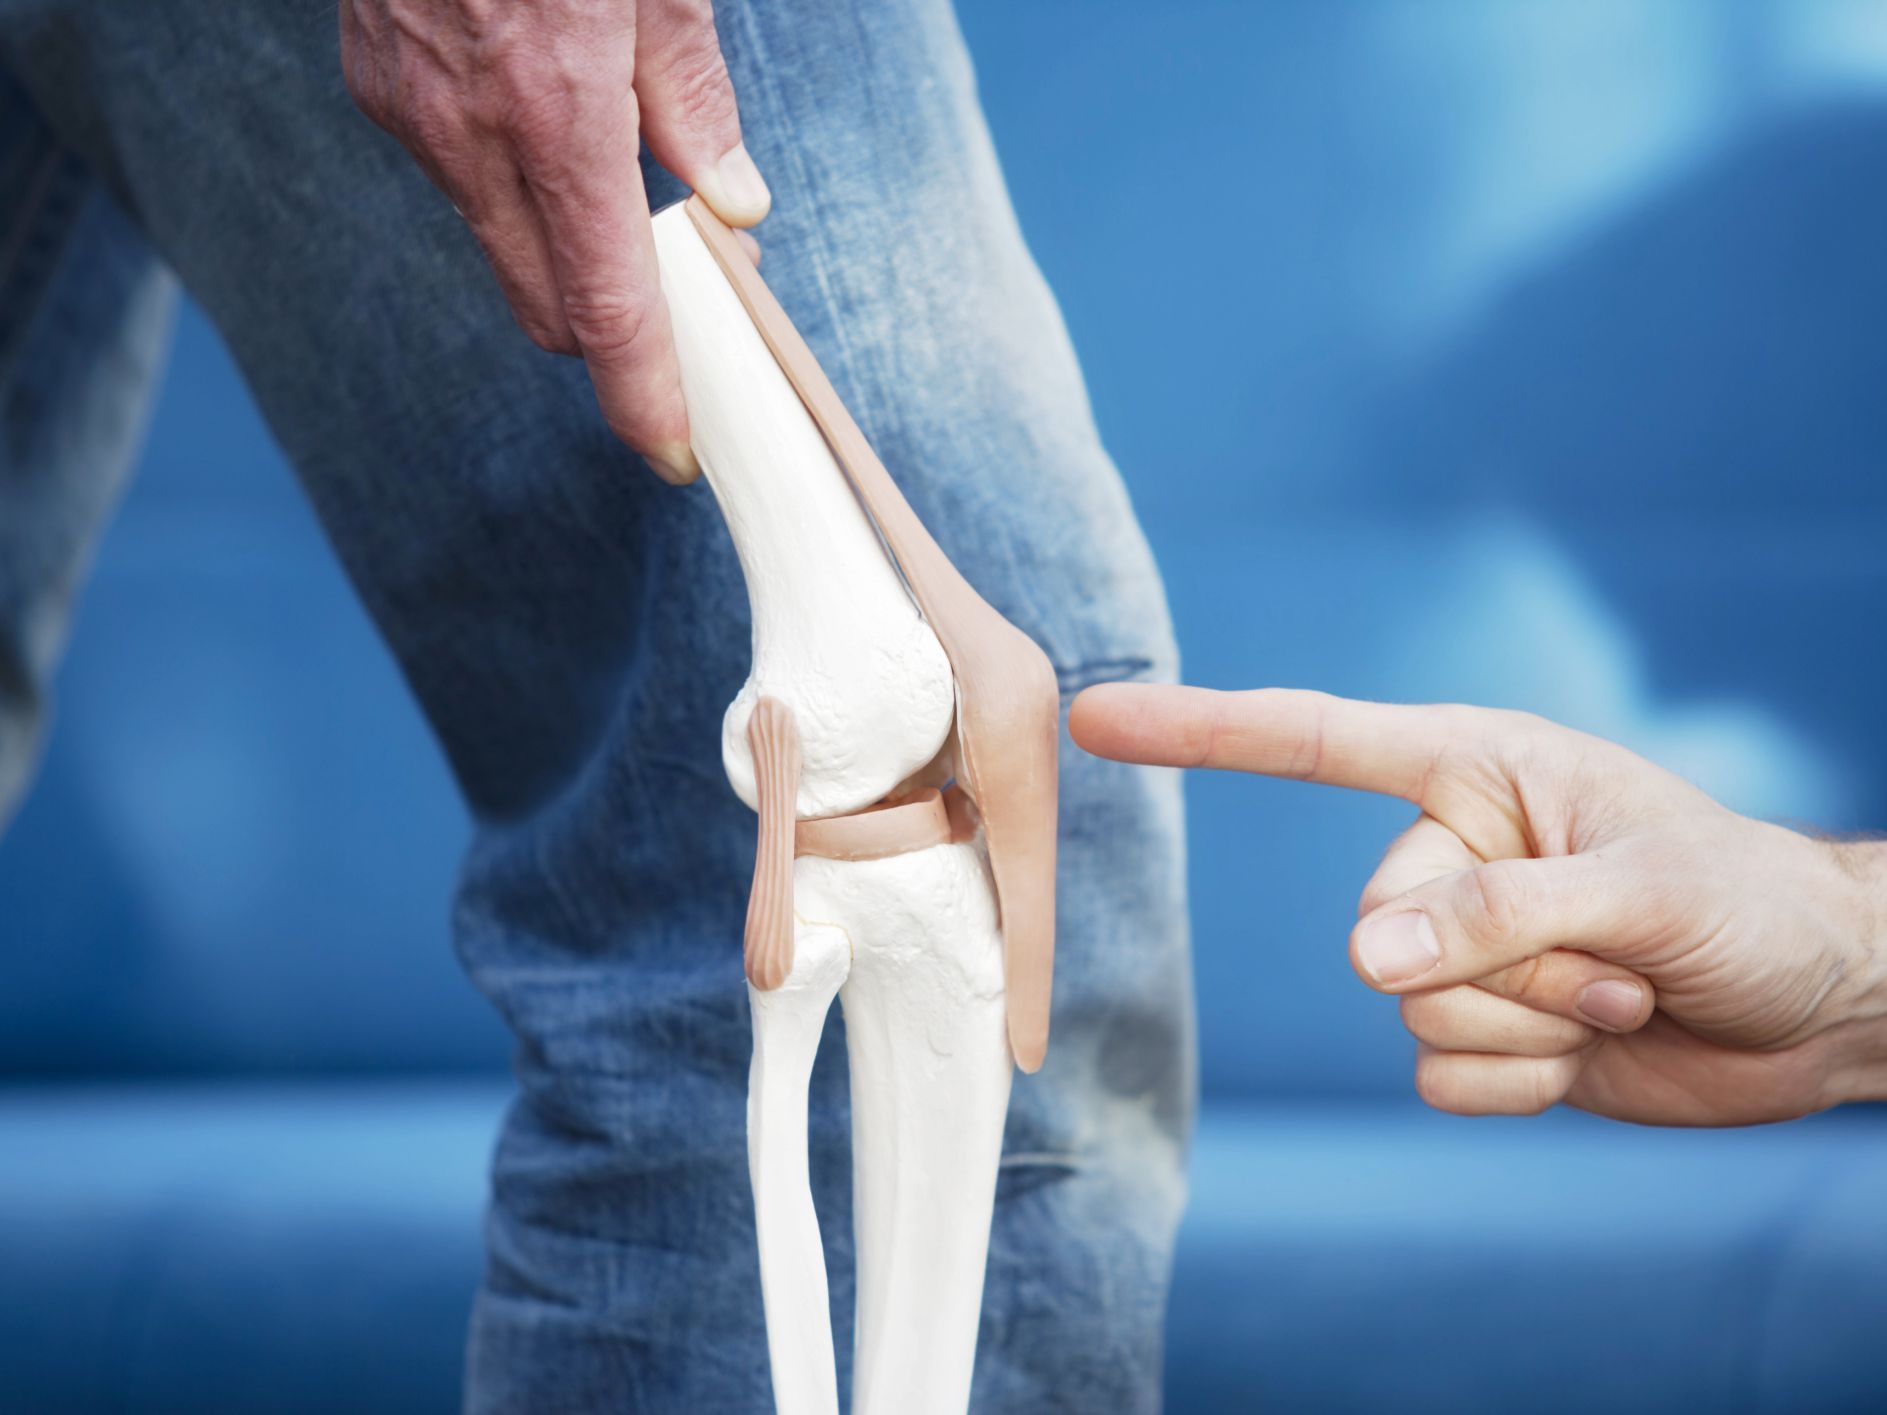 Patella or Kneecap Pain Diagnosis and Treatment